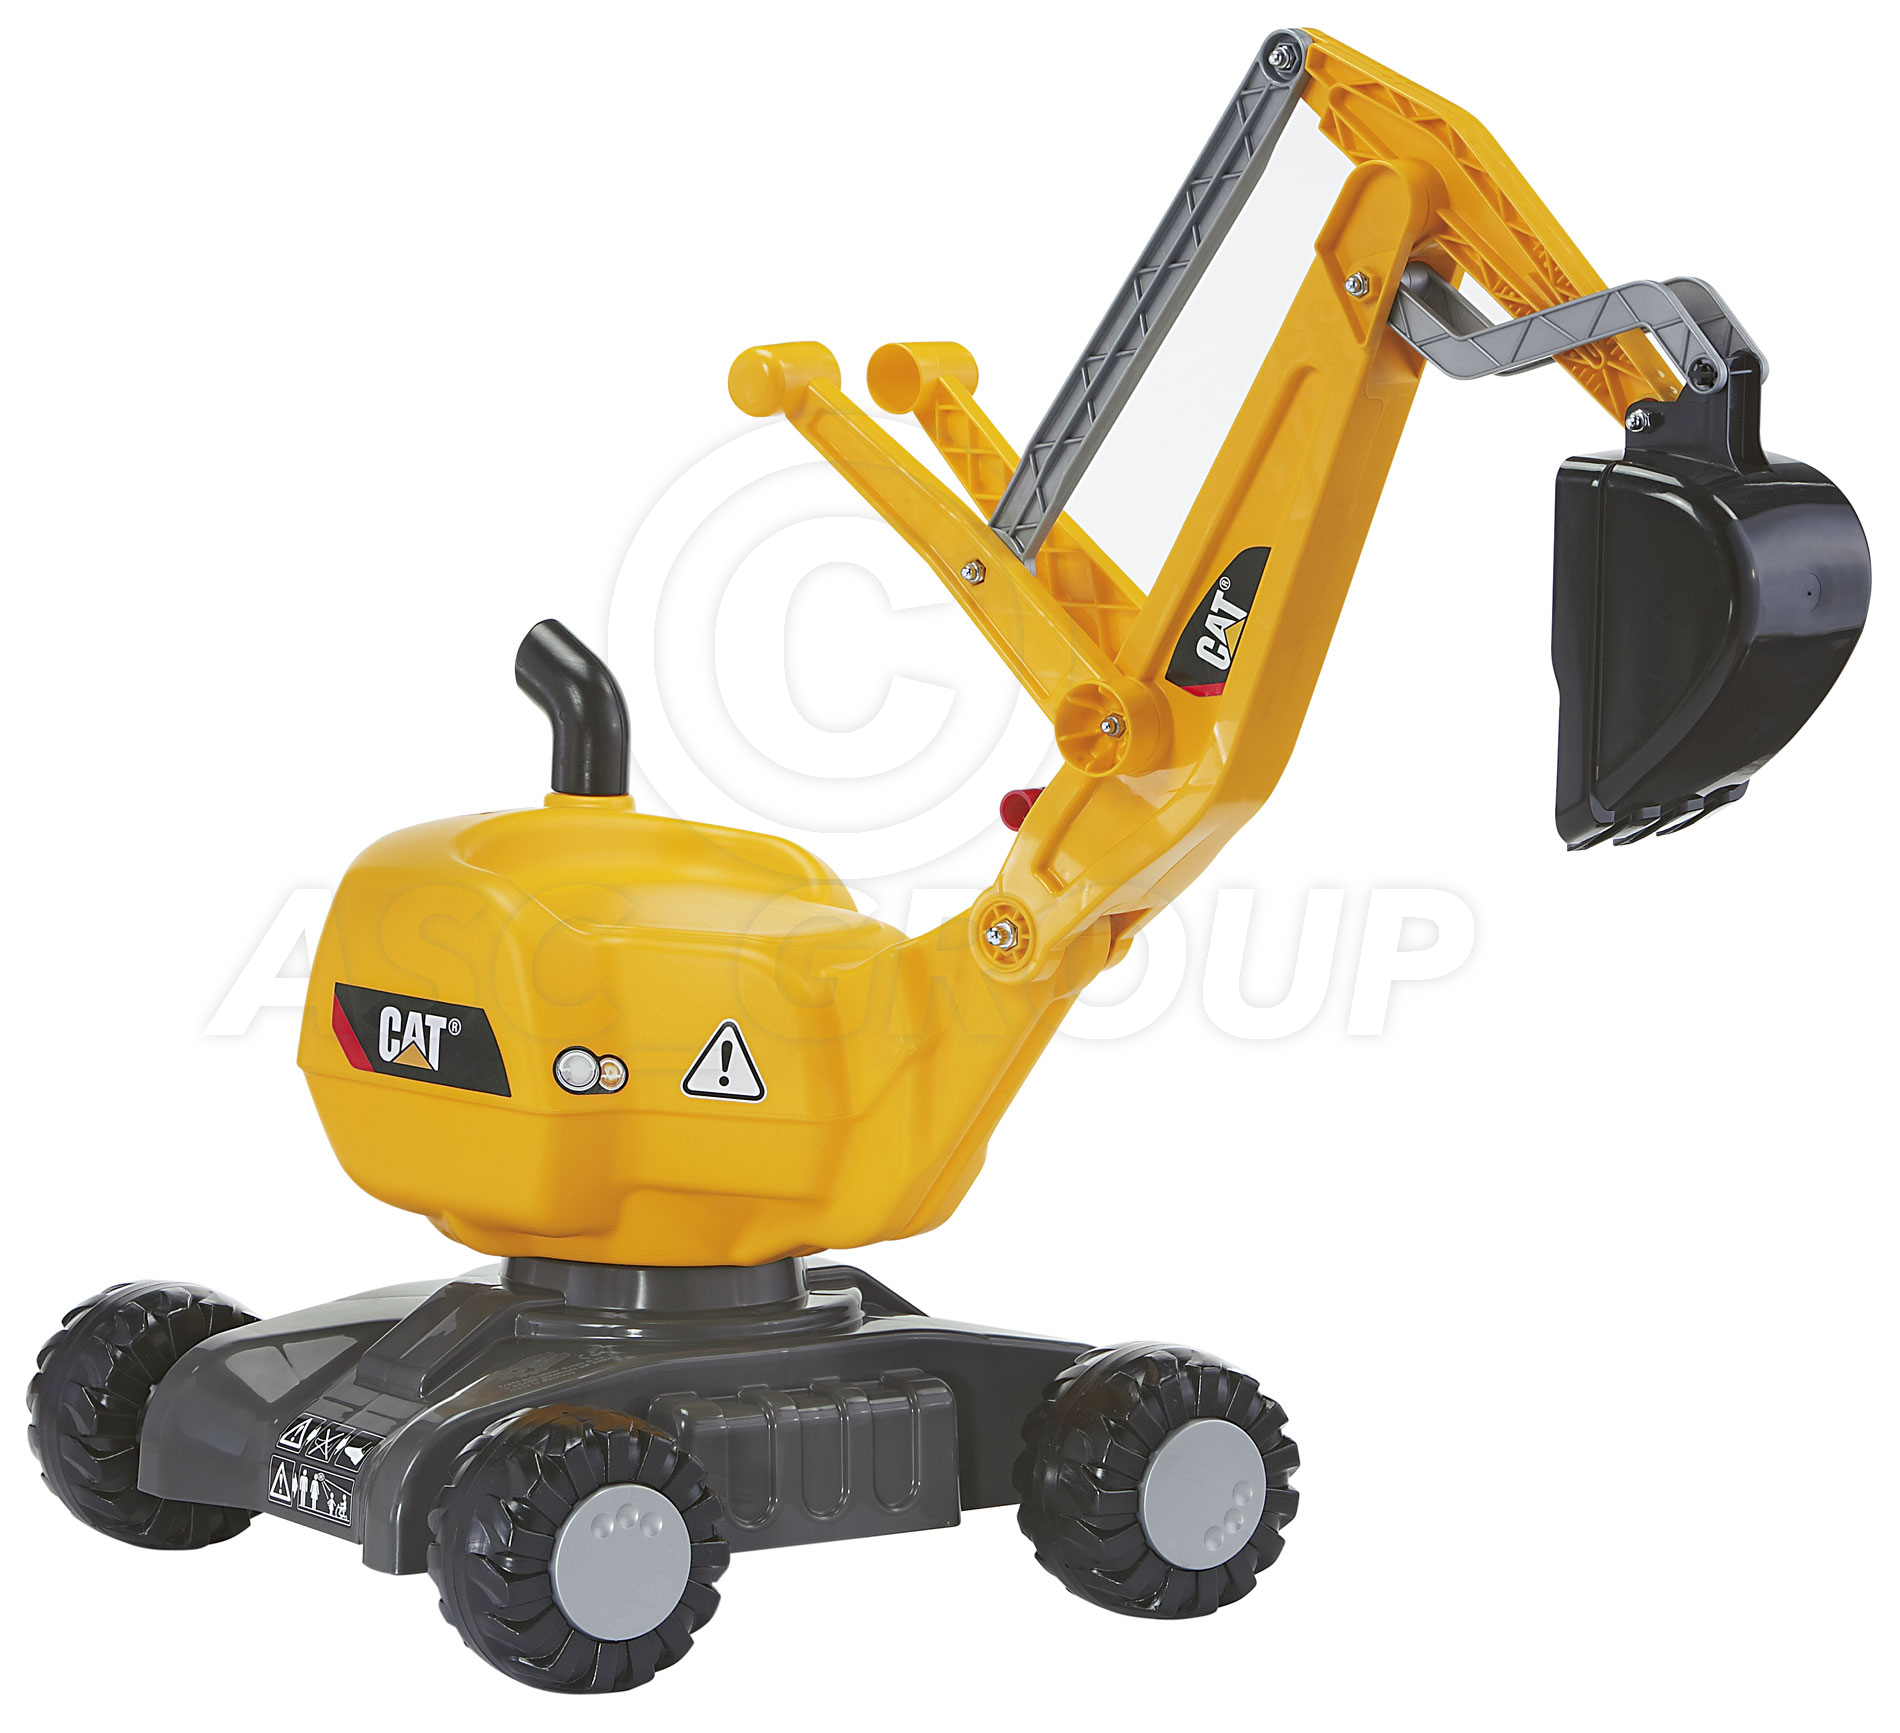 Rolly Toys Cat Ride On Digger Excavator On Wheels Sit